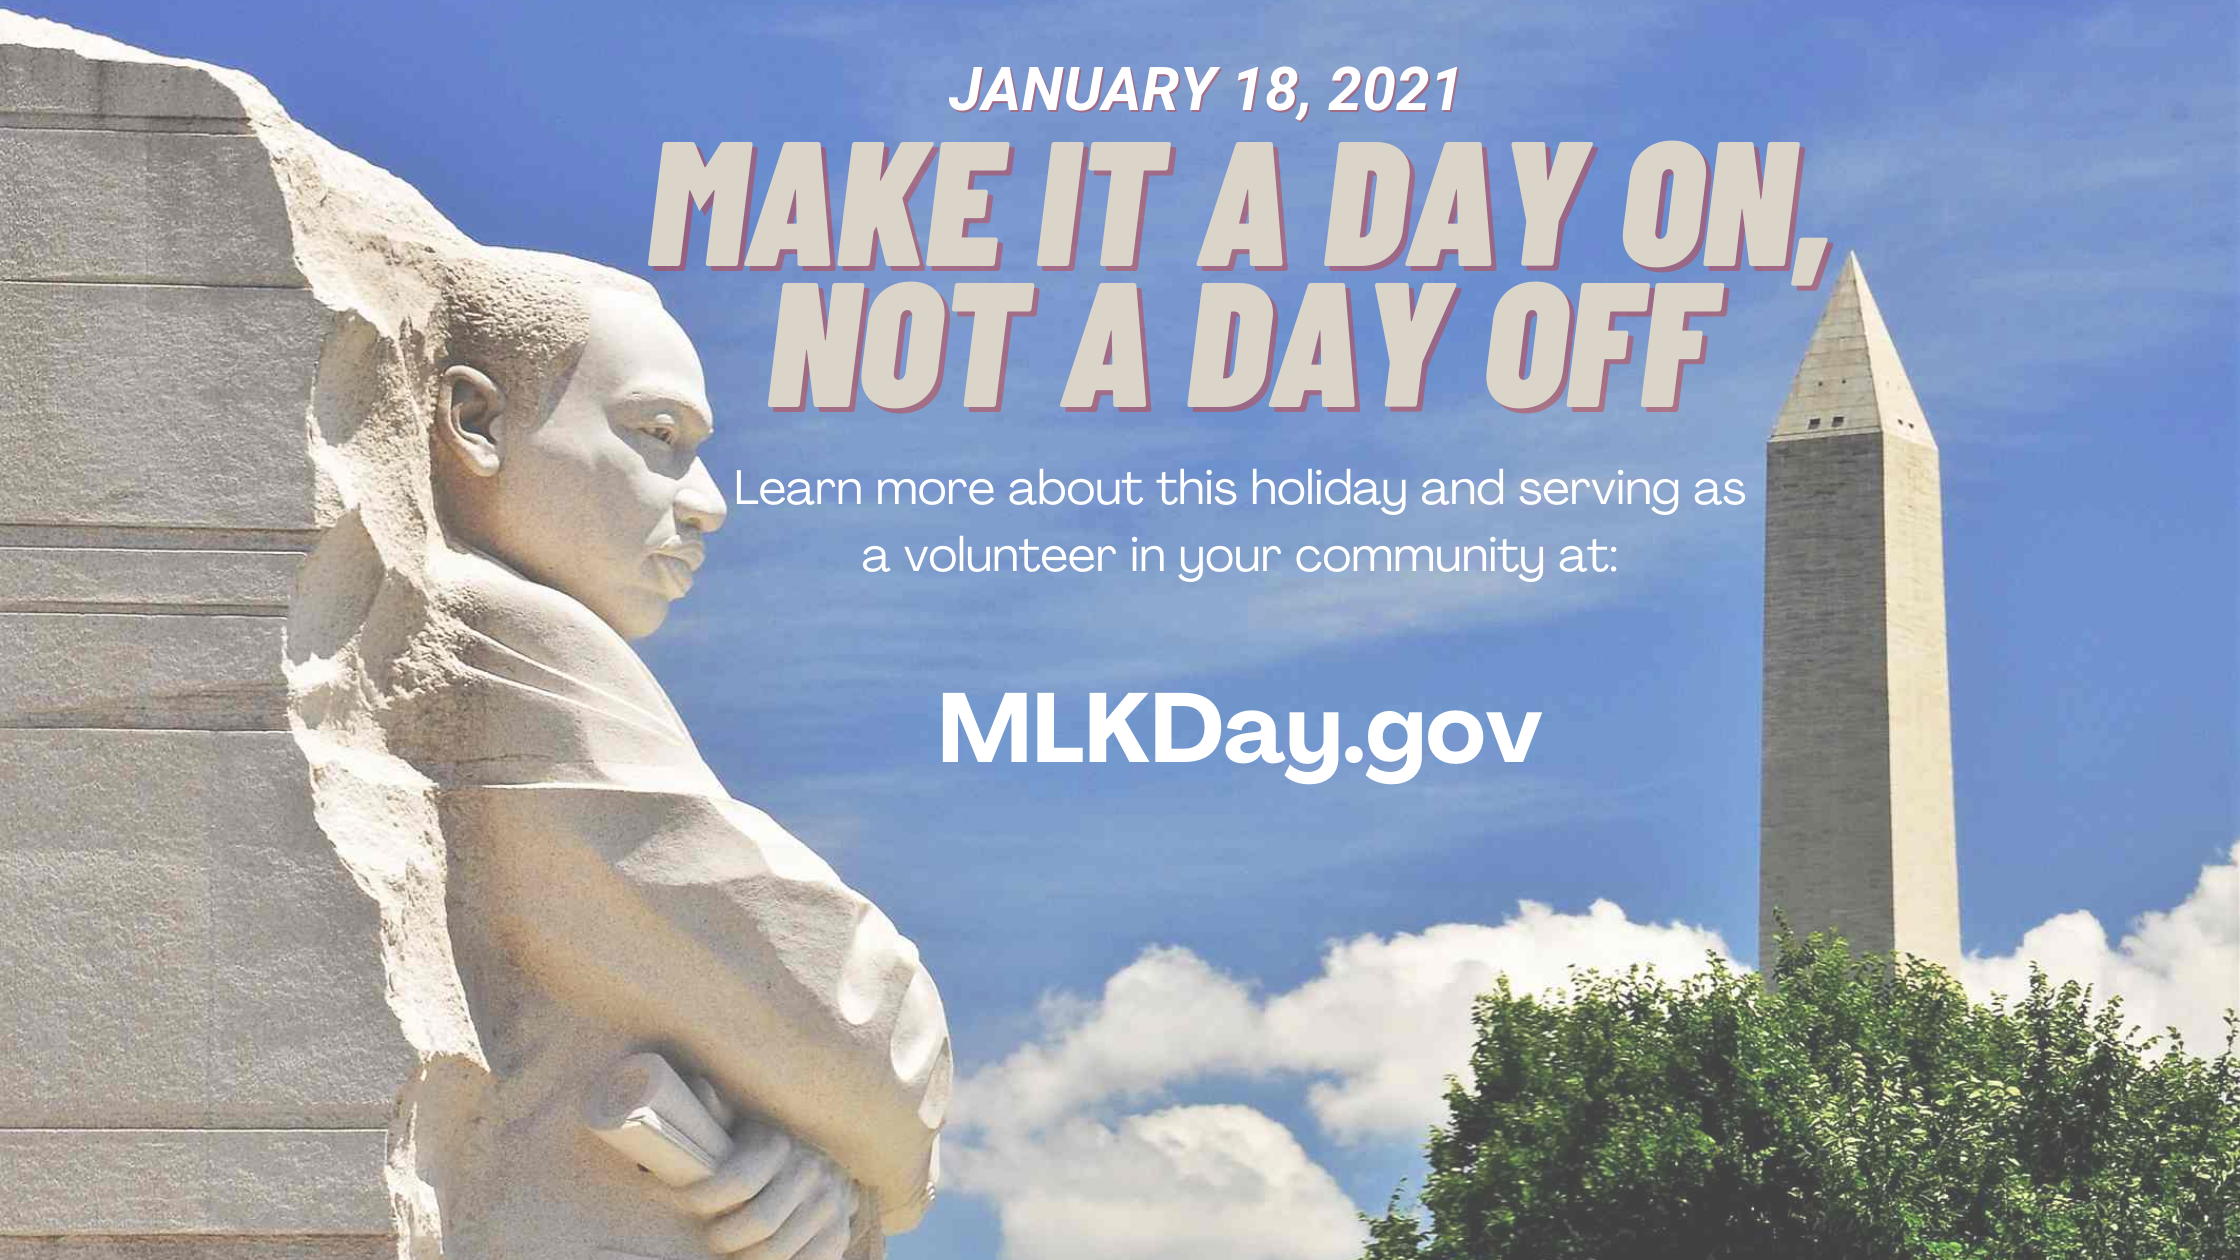 Make it a day on, not a day off Learn more about this holiday and serving as a volunteer in your community at MLKDay.gov